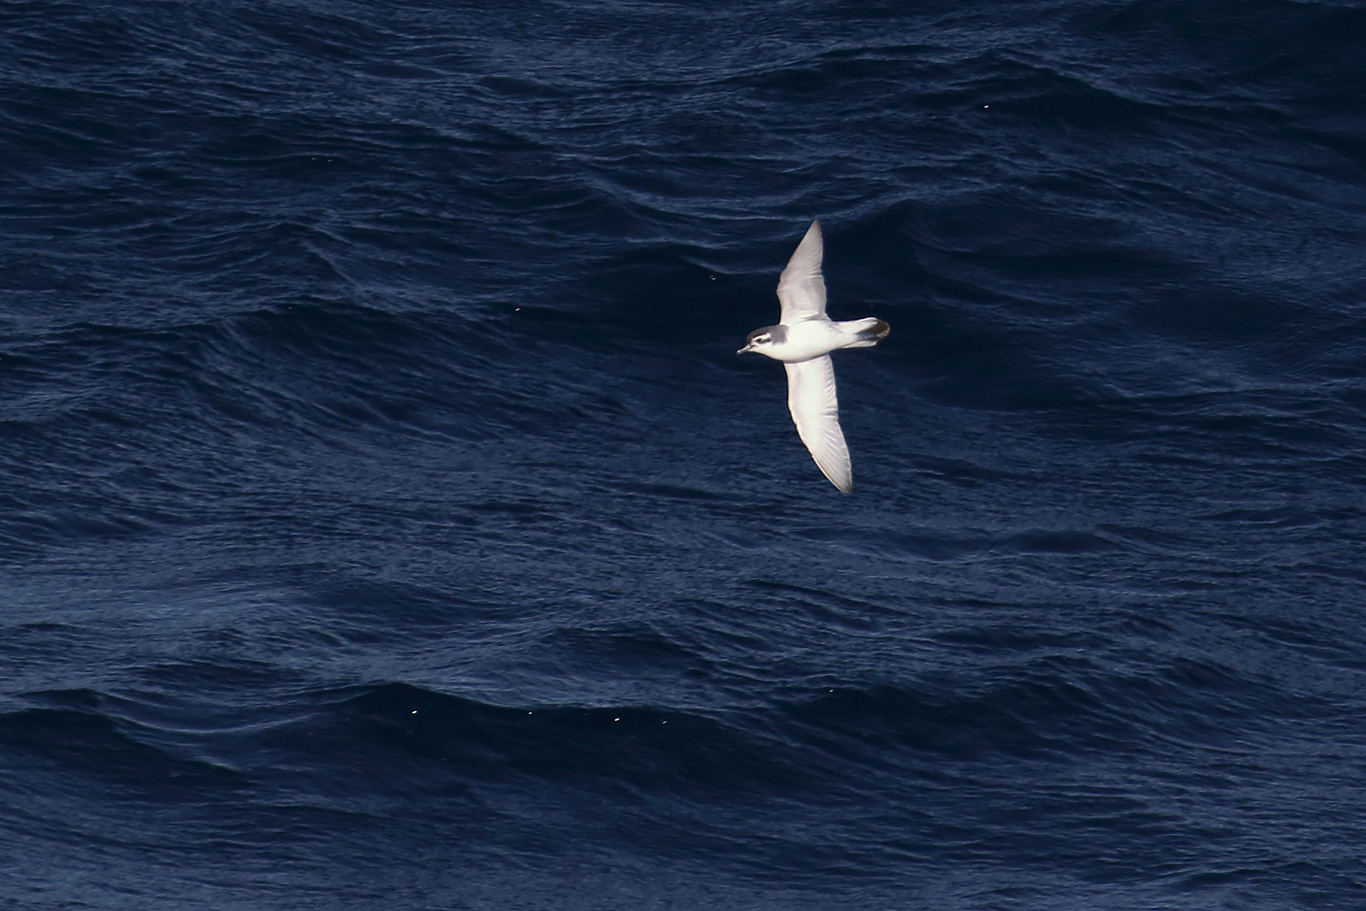 Prion species, At sea, south of Falkland Islands and north of Antarctica, South Atlantic Ocean.